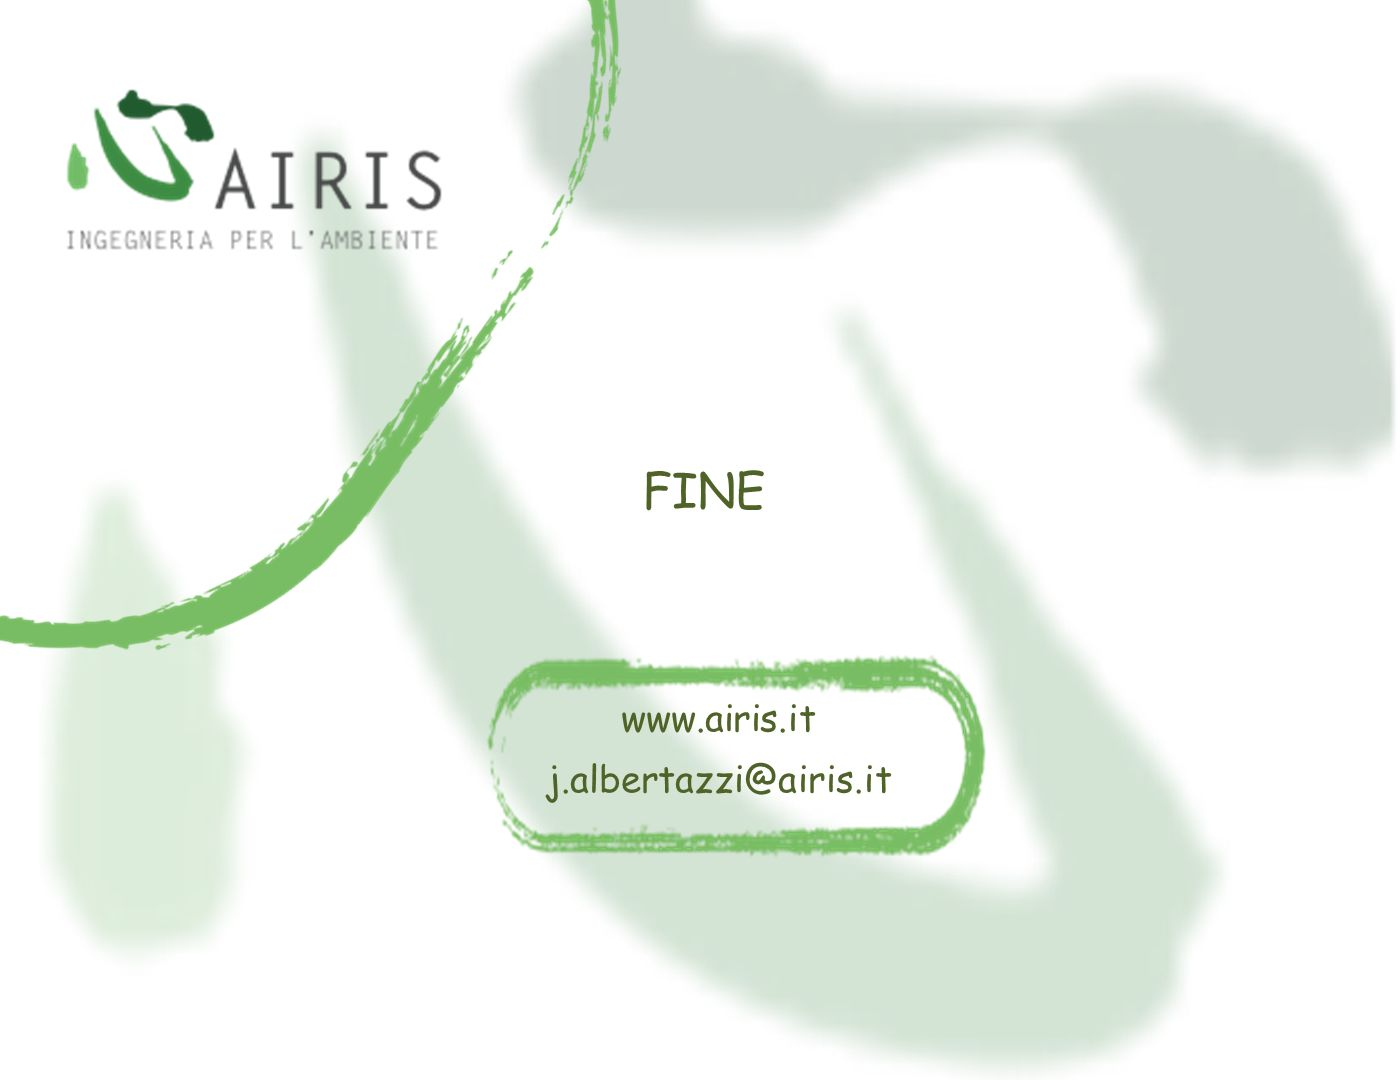 FINE www.airis.it j.albertazzi@airis.it